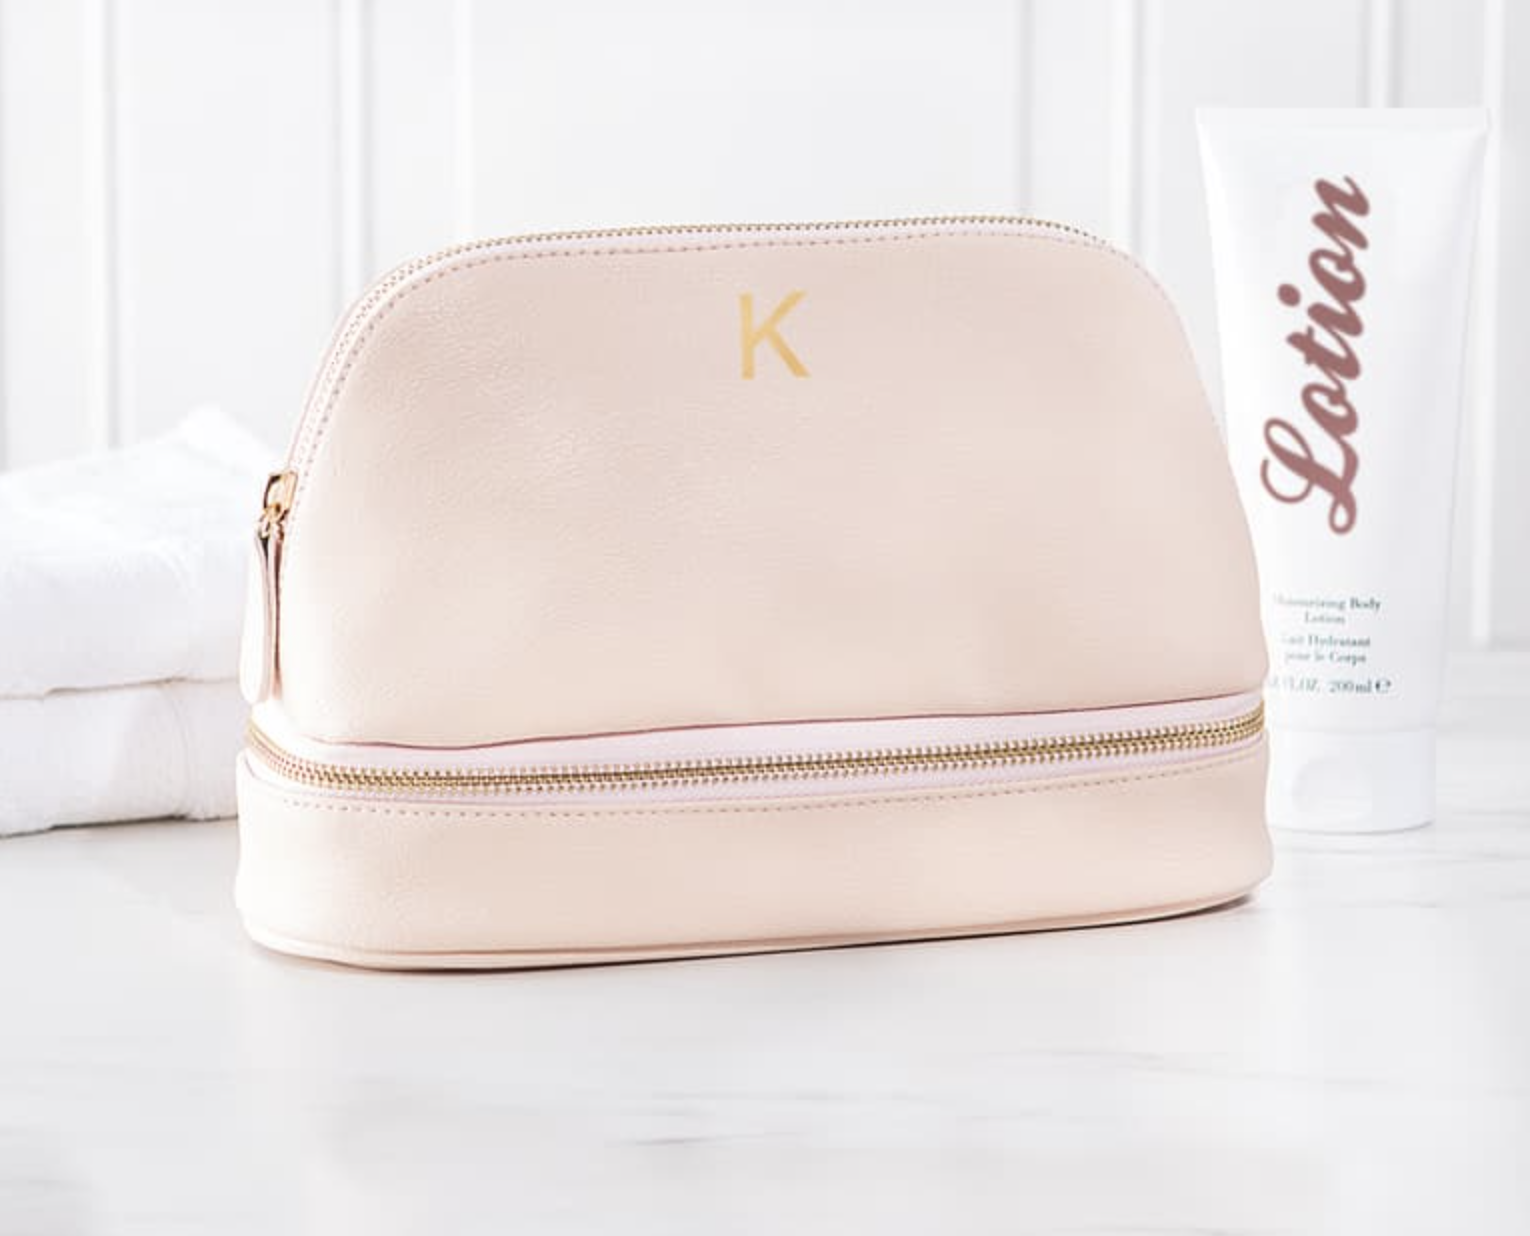 Blush pink cosmetics bag with a gold letter K at the top